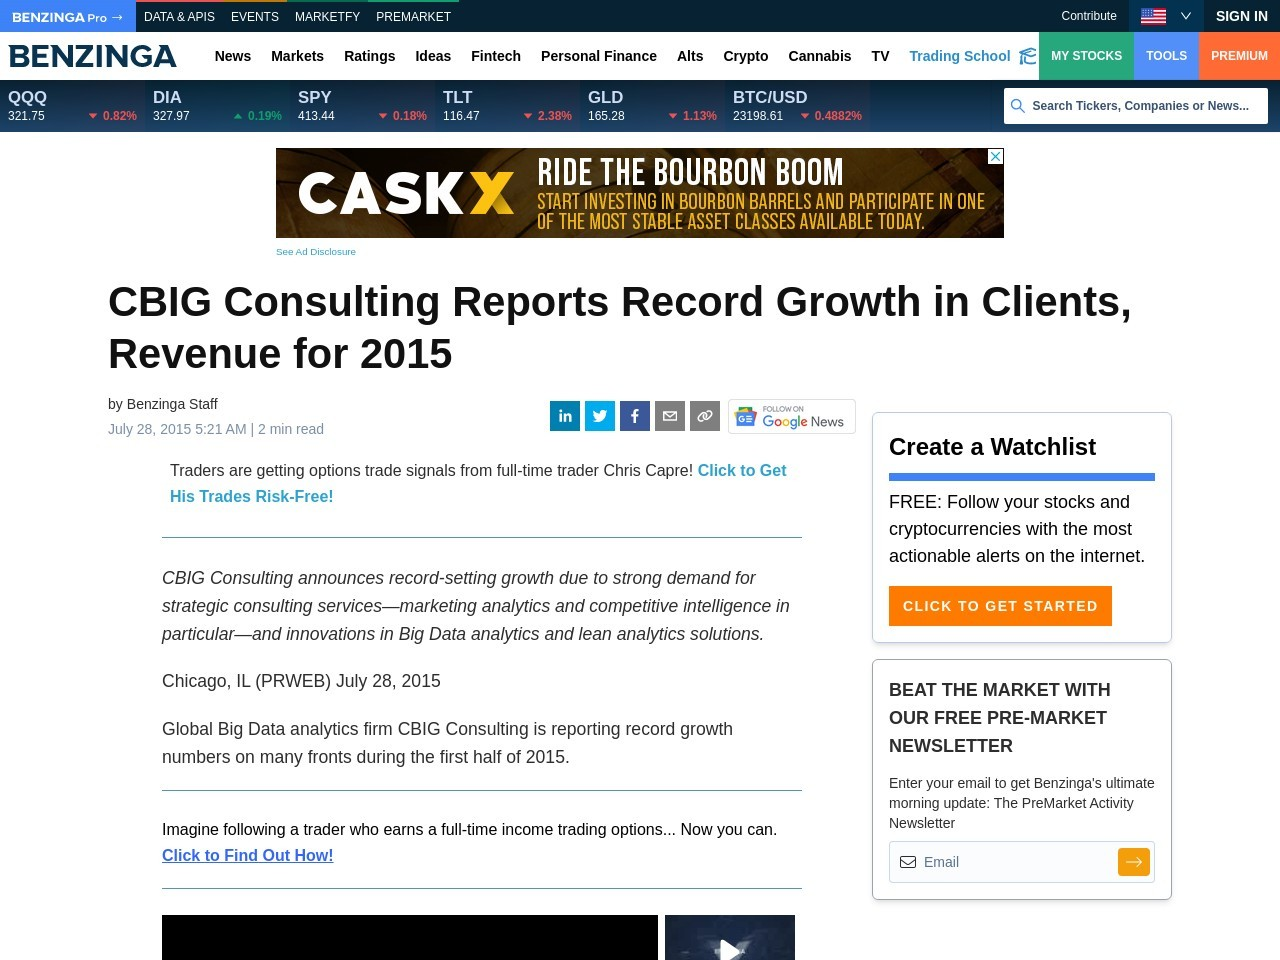 CBIG Consulting Reports Record Growth in Clients, Revenue for 2015